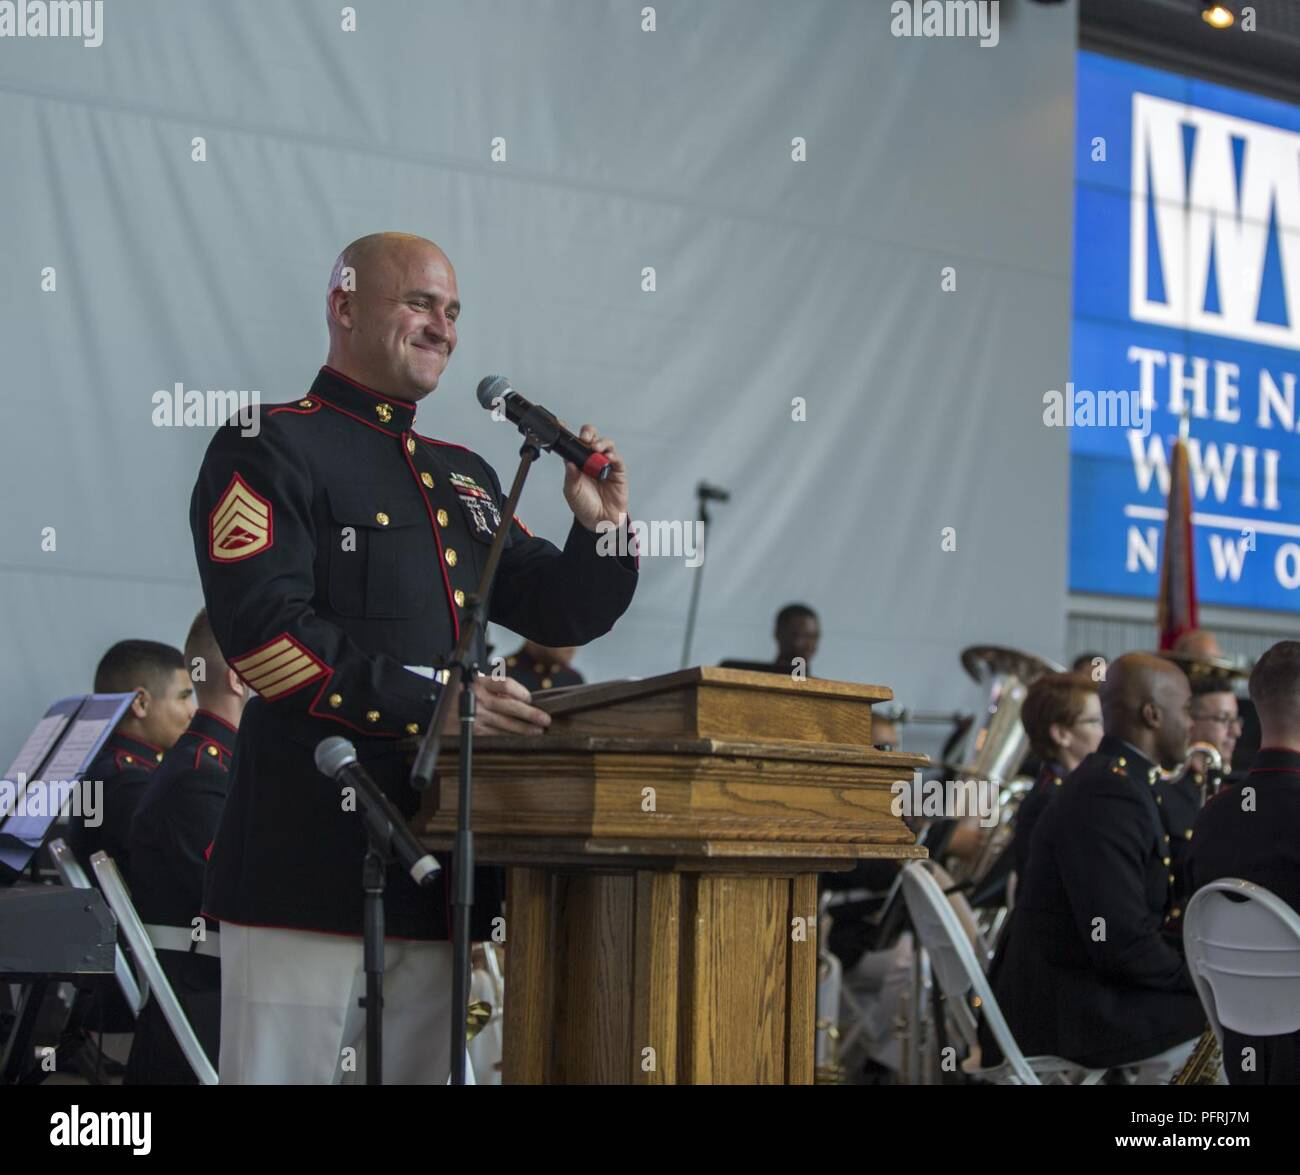 Staff Sgt. Keith Algeo, drum major with The Marine Forces Reserve Band, introduces the next performance during a Memorial Day Remembrance ceremony at the World War II Museum in New Orleans, May 26, 2018. The Marines performed to the public to honor the men and women who have given the ultimate sacrifice for their nation. - Stock Image